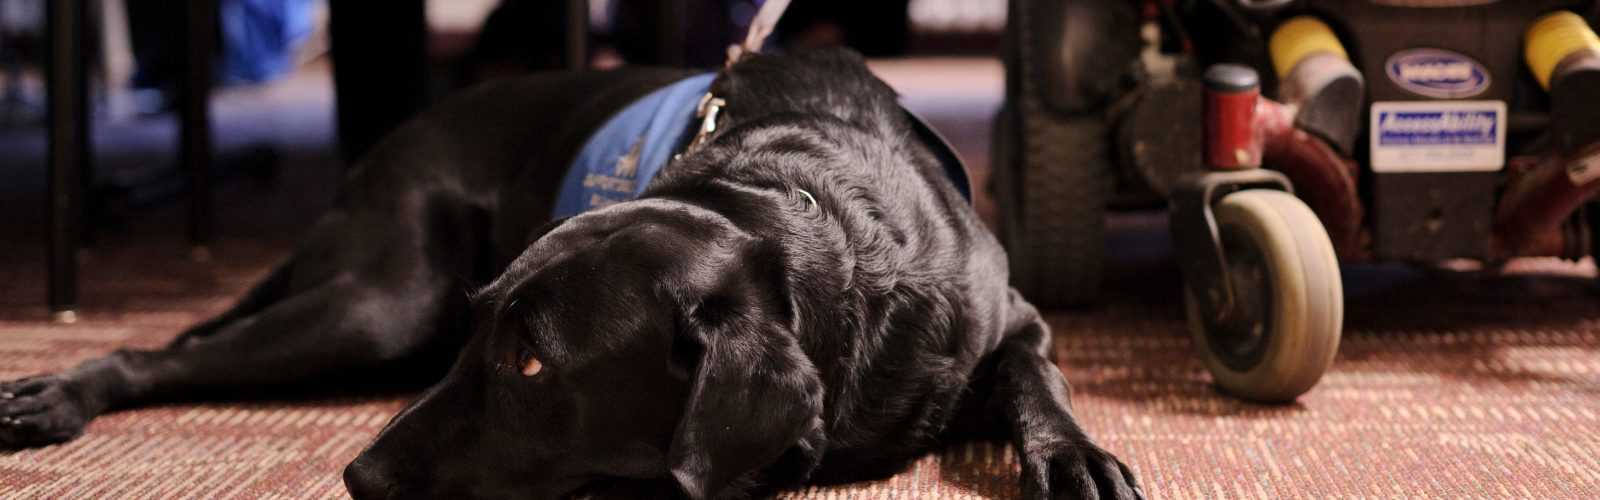 service dog rests at foot of owner